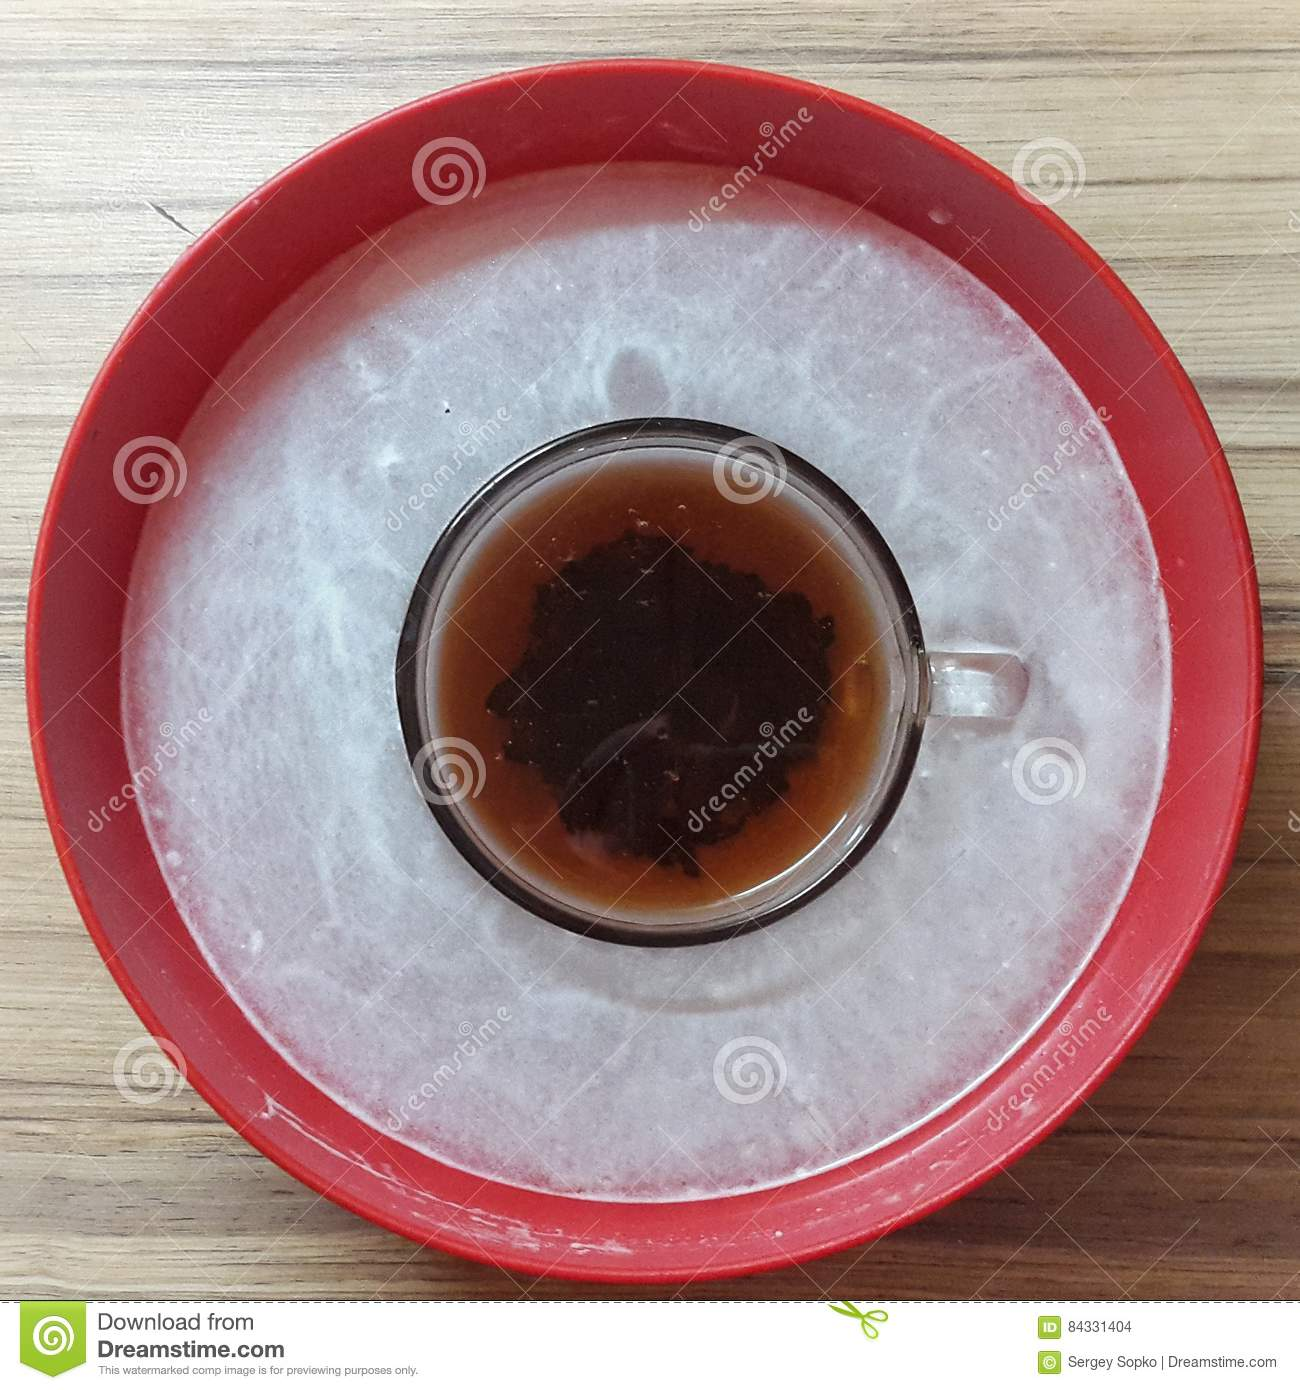 Tea Cup Bag in a red bowl. BACKGROUND